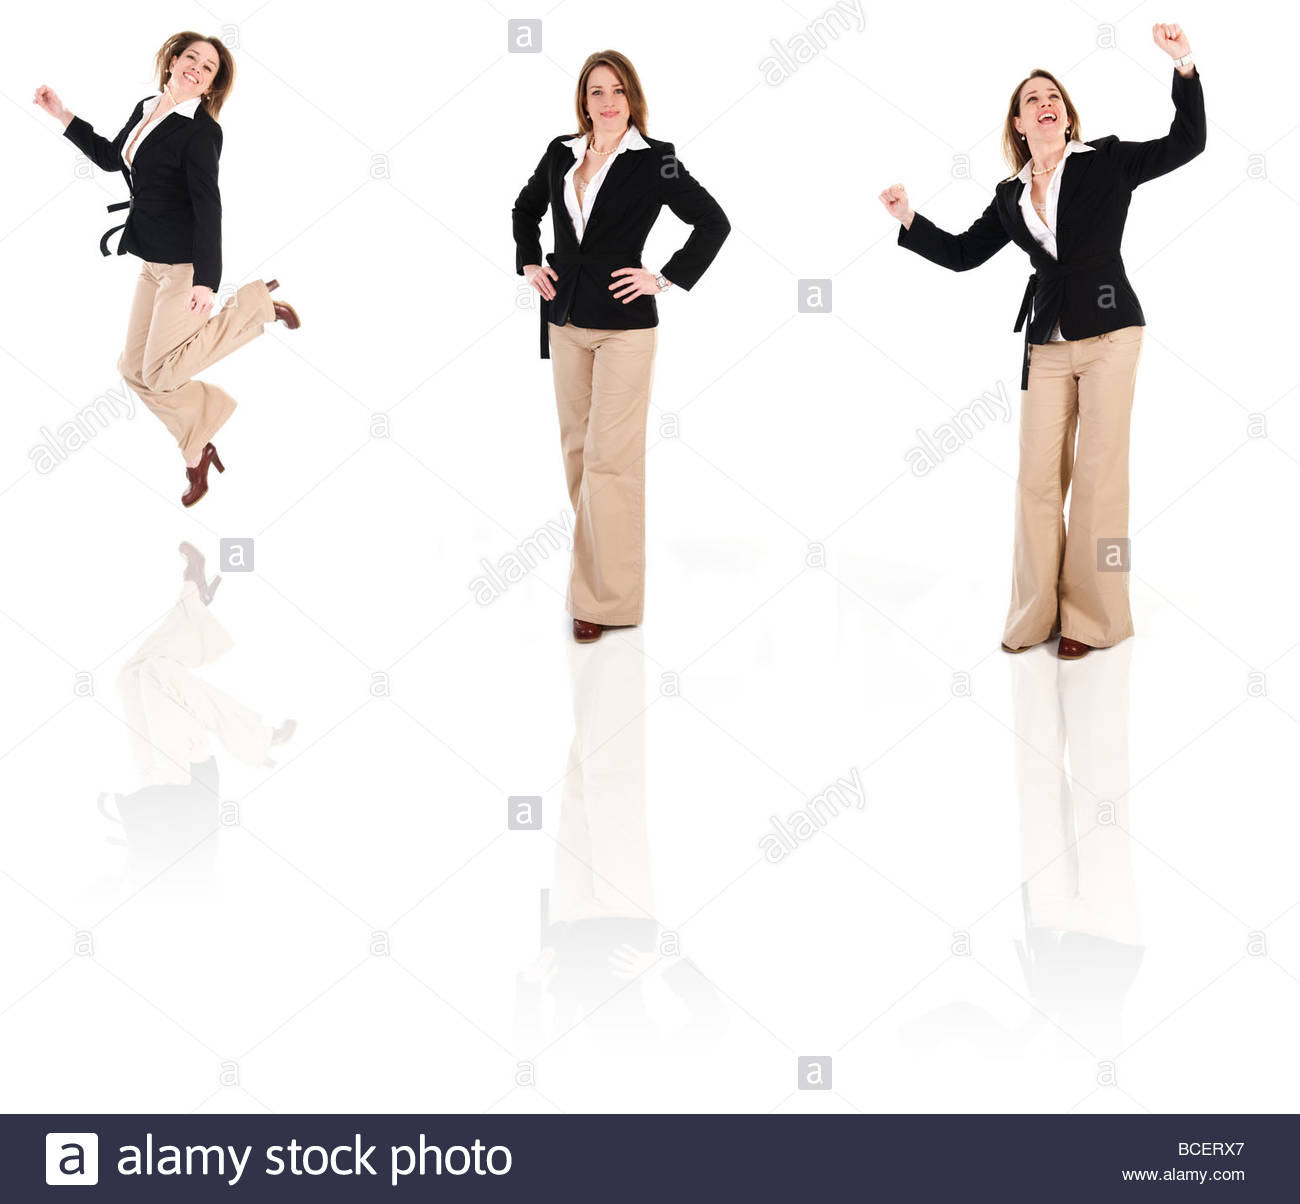 happy business woman on an isolated white background poses - Stock Image